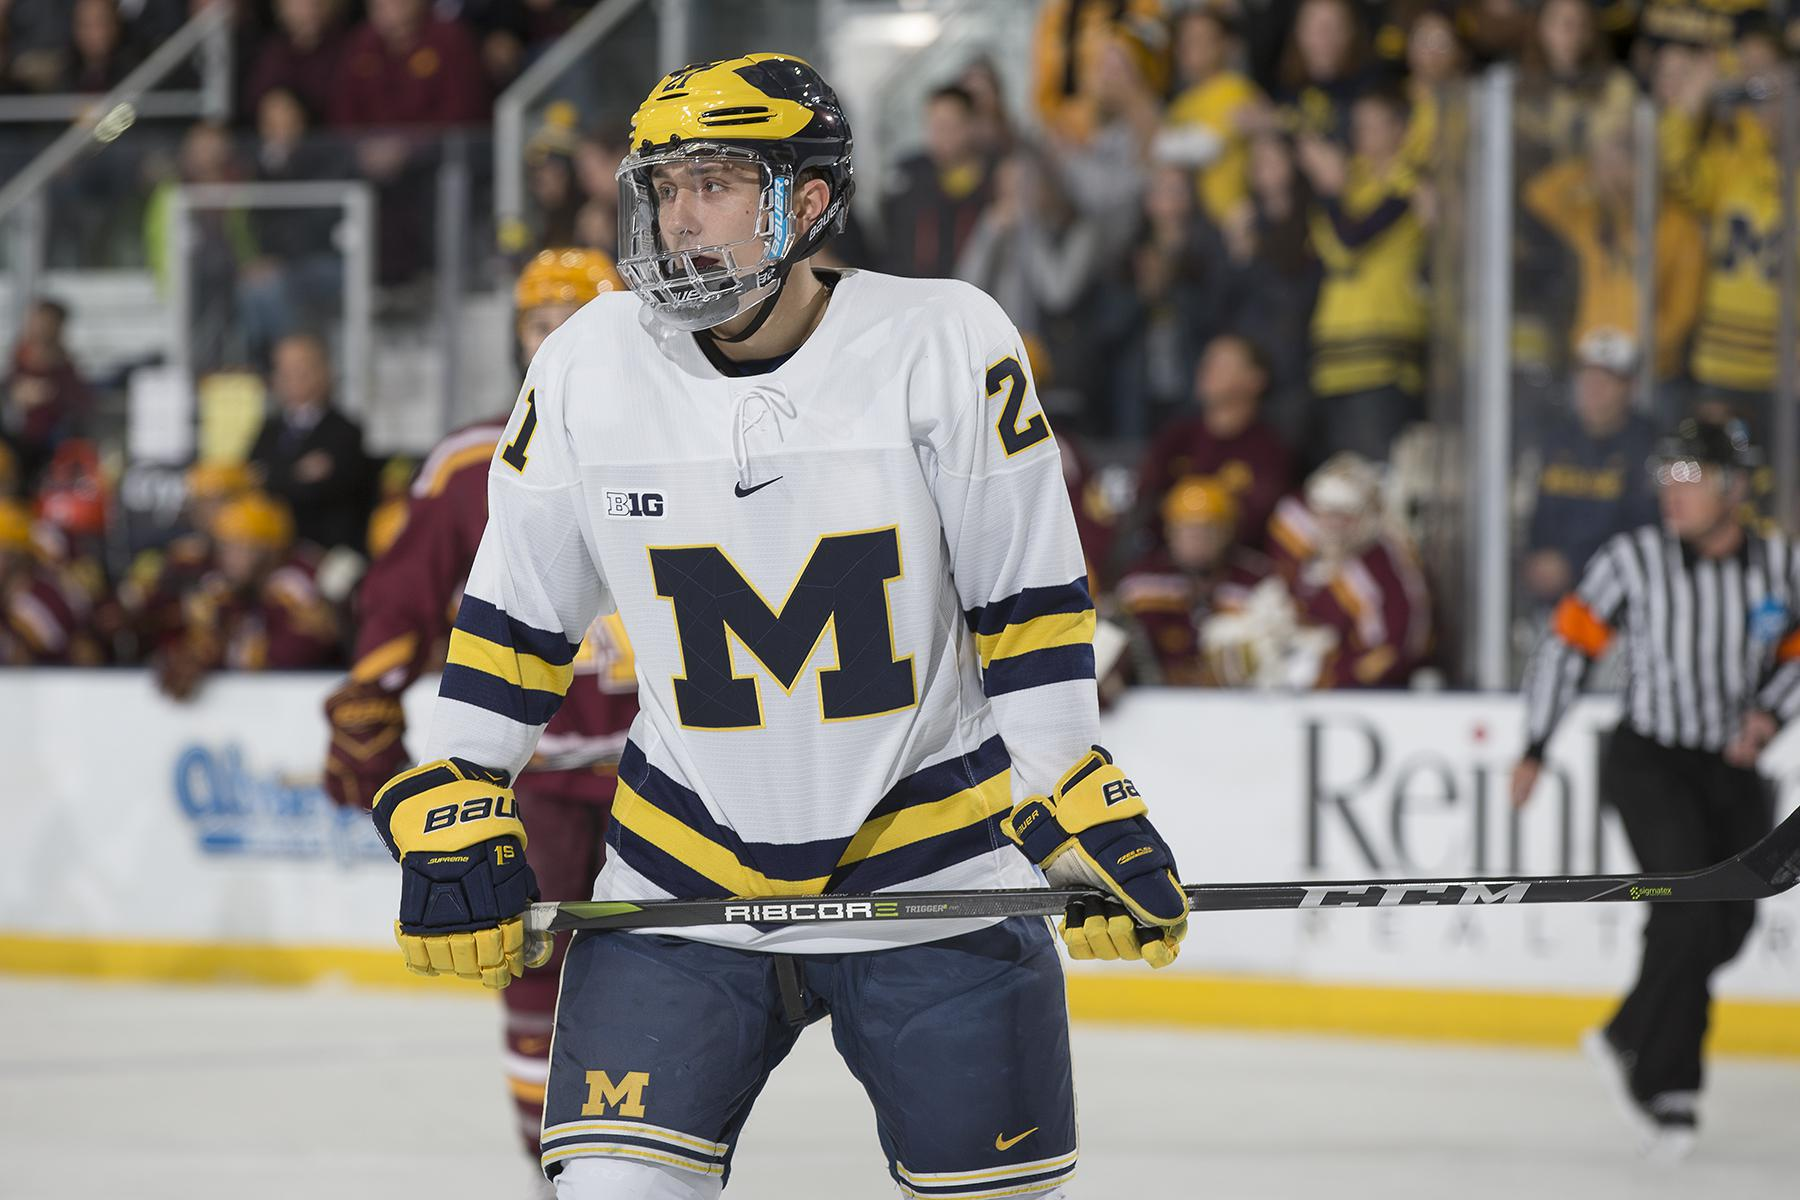 Mike Pastujov with the University of Michigan (photo courtesy of Michigan Photography & Rena Laverty)